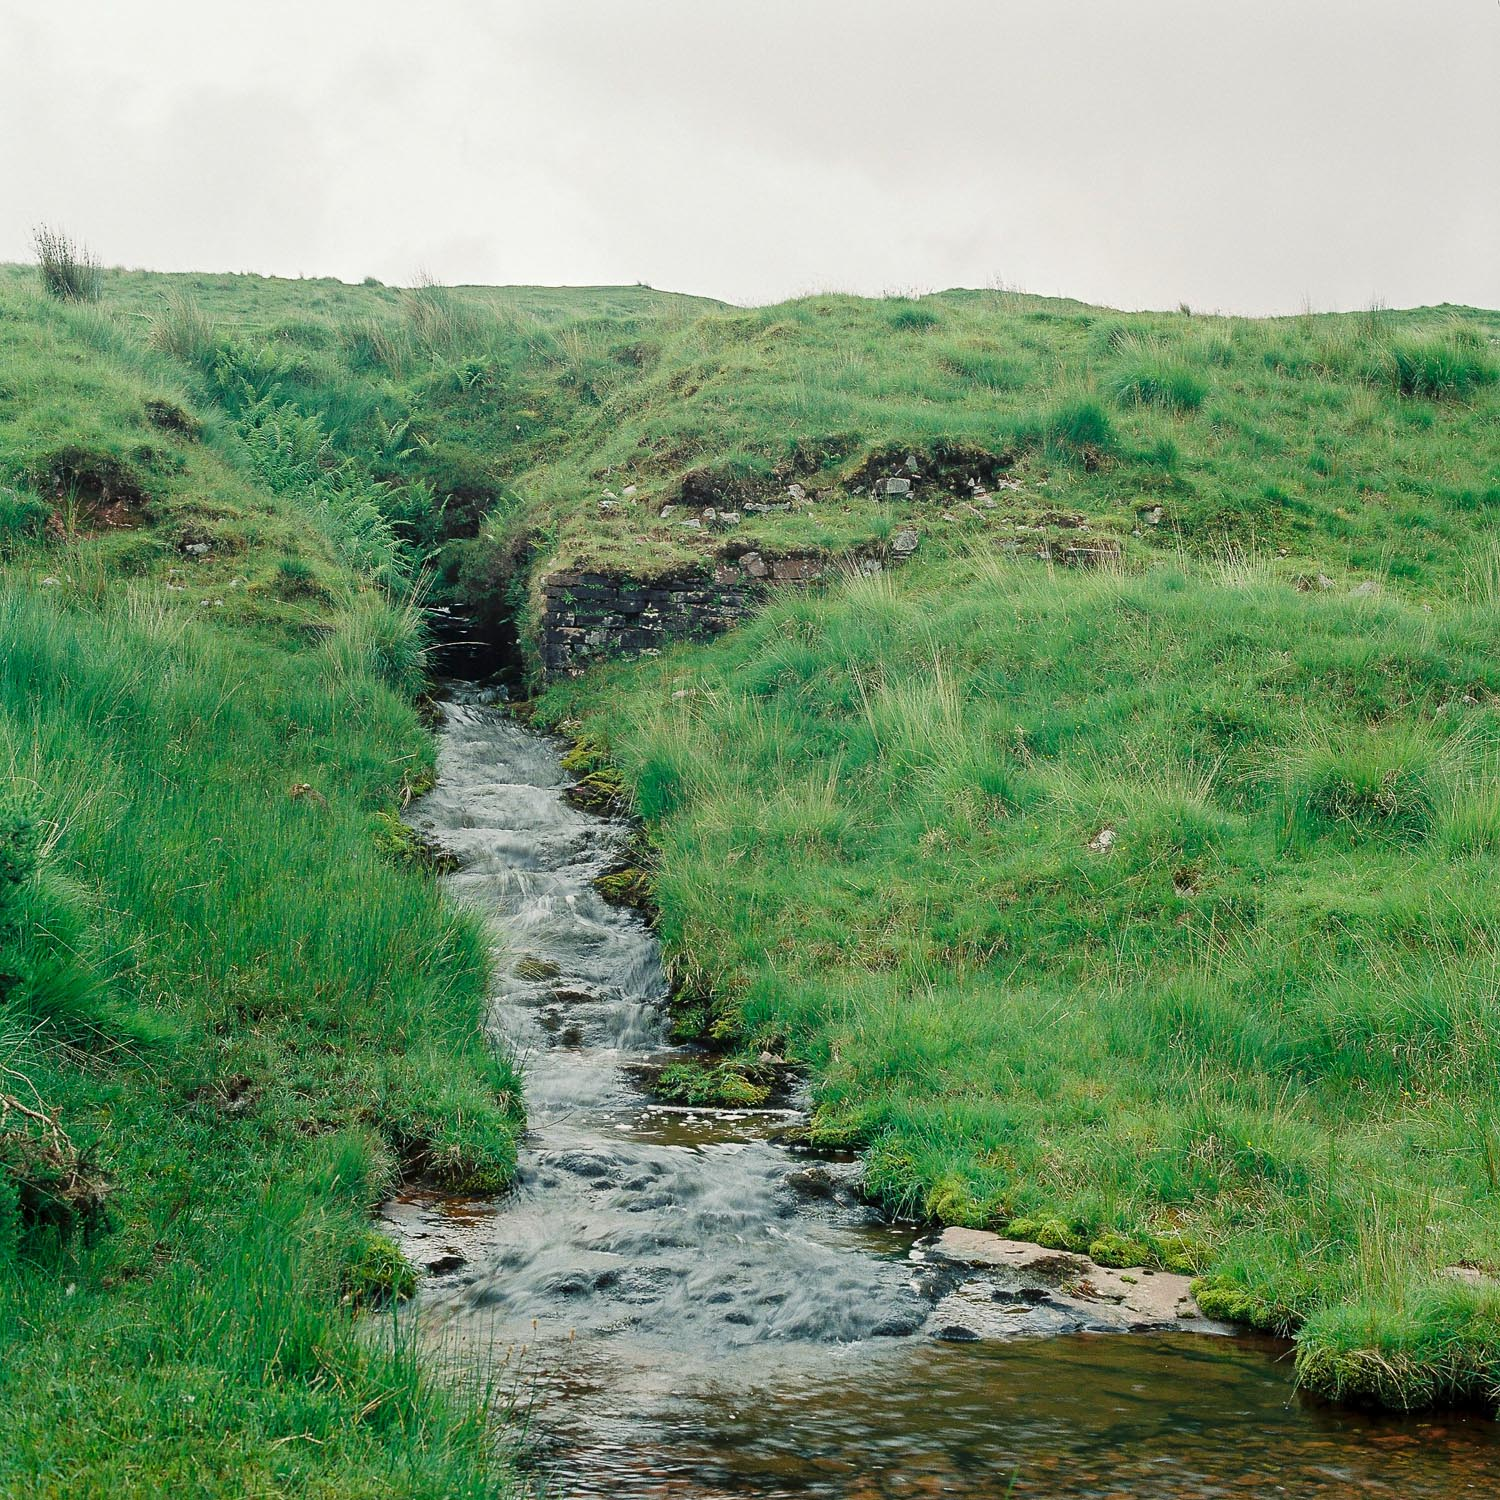 Small streams like this are found all over the Brecon Beacons, stopping at each one soon makes a quick drive much longer!